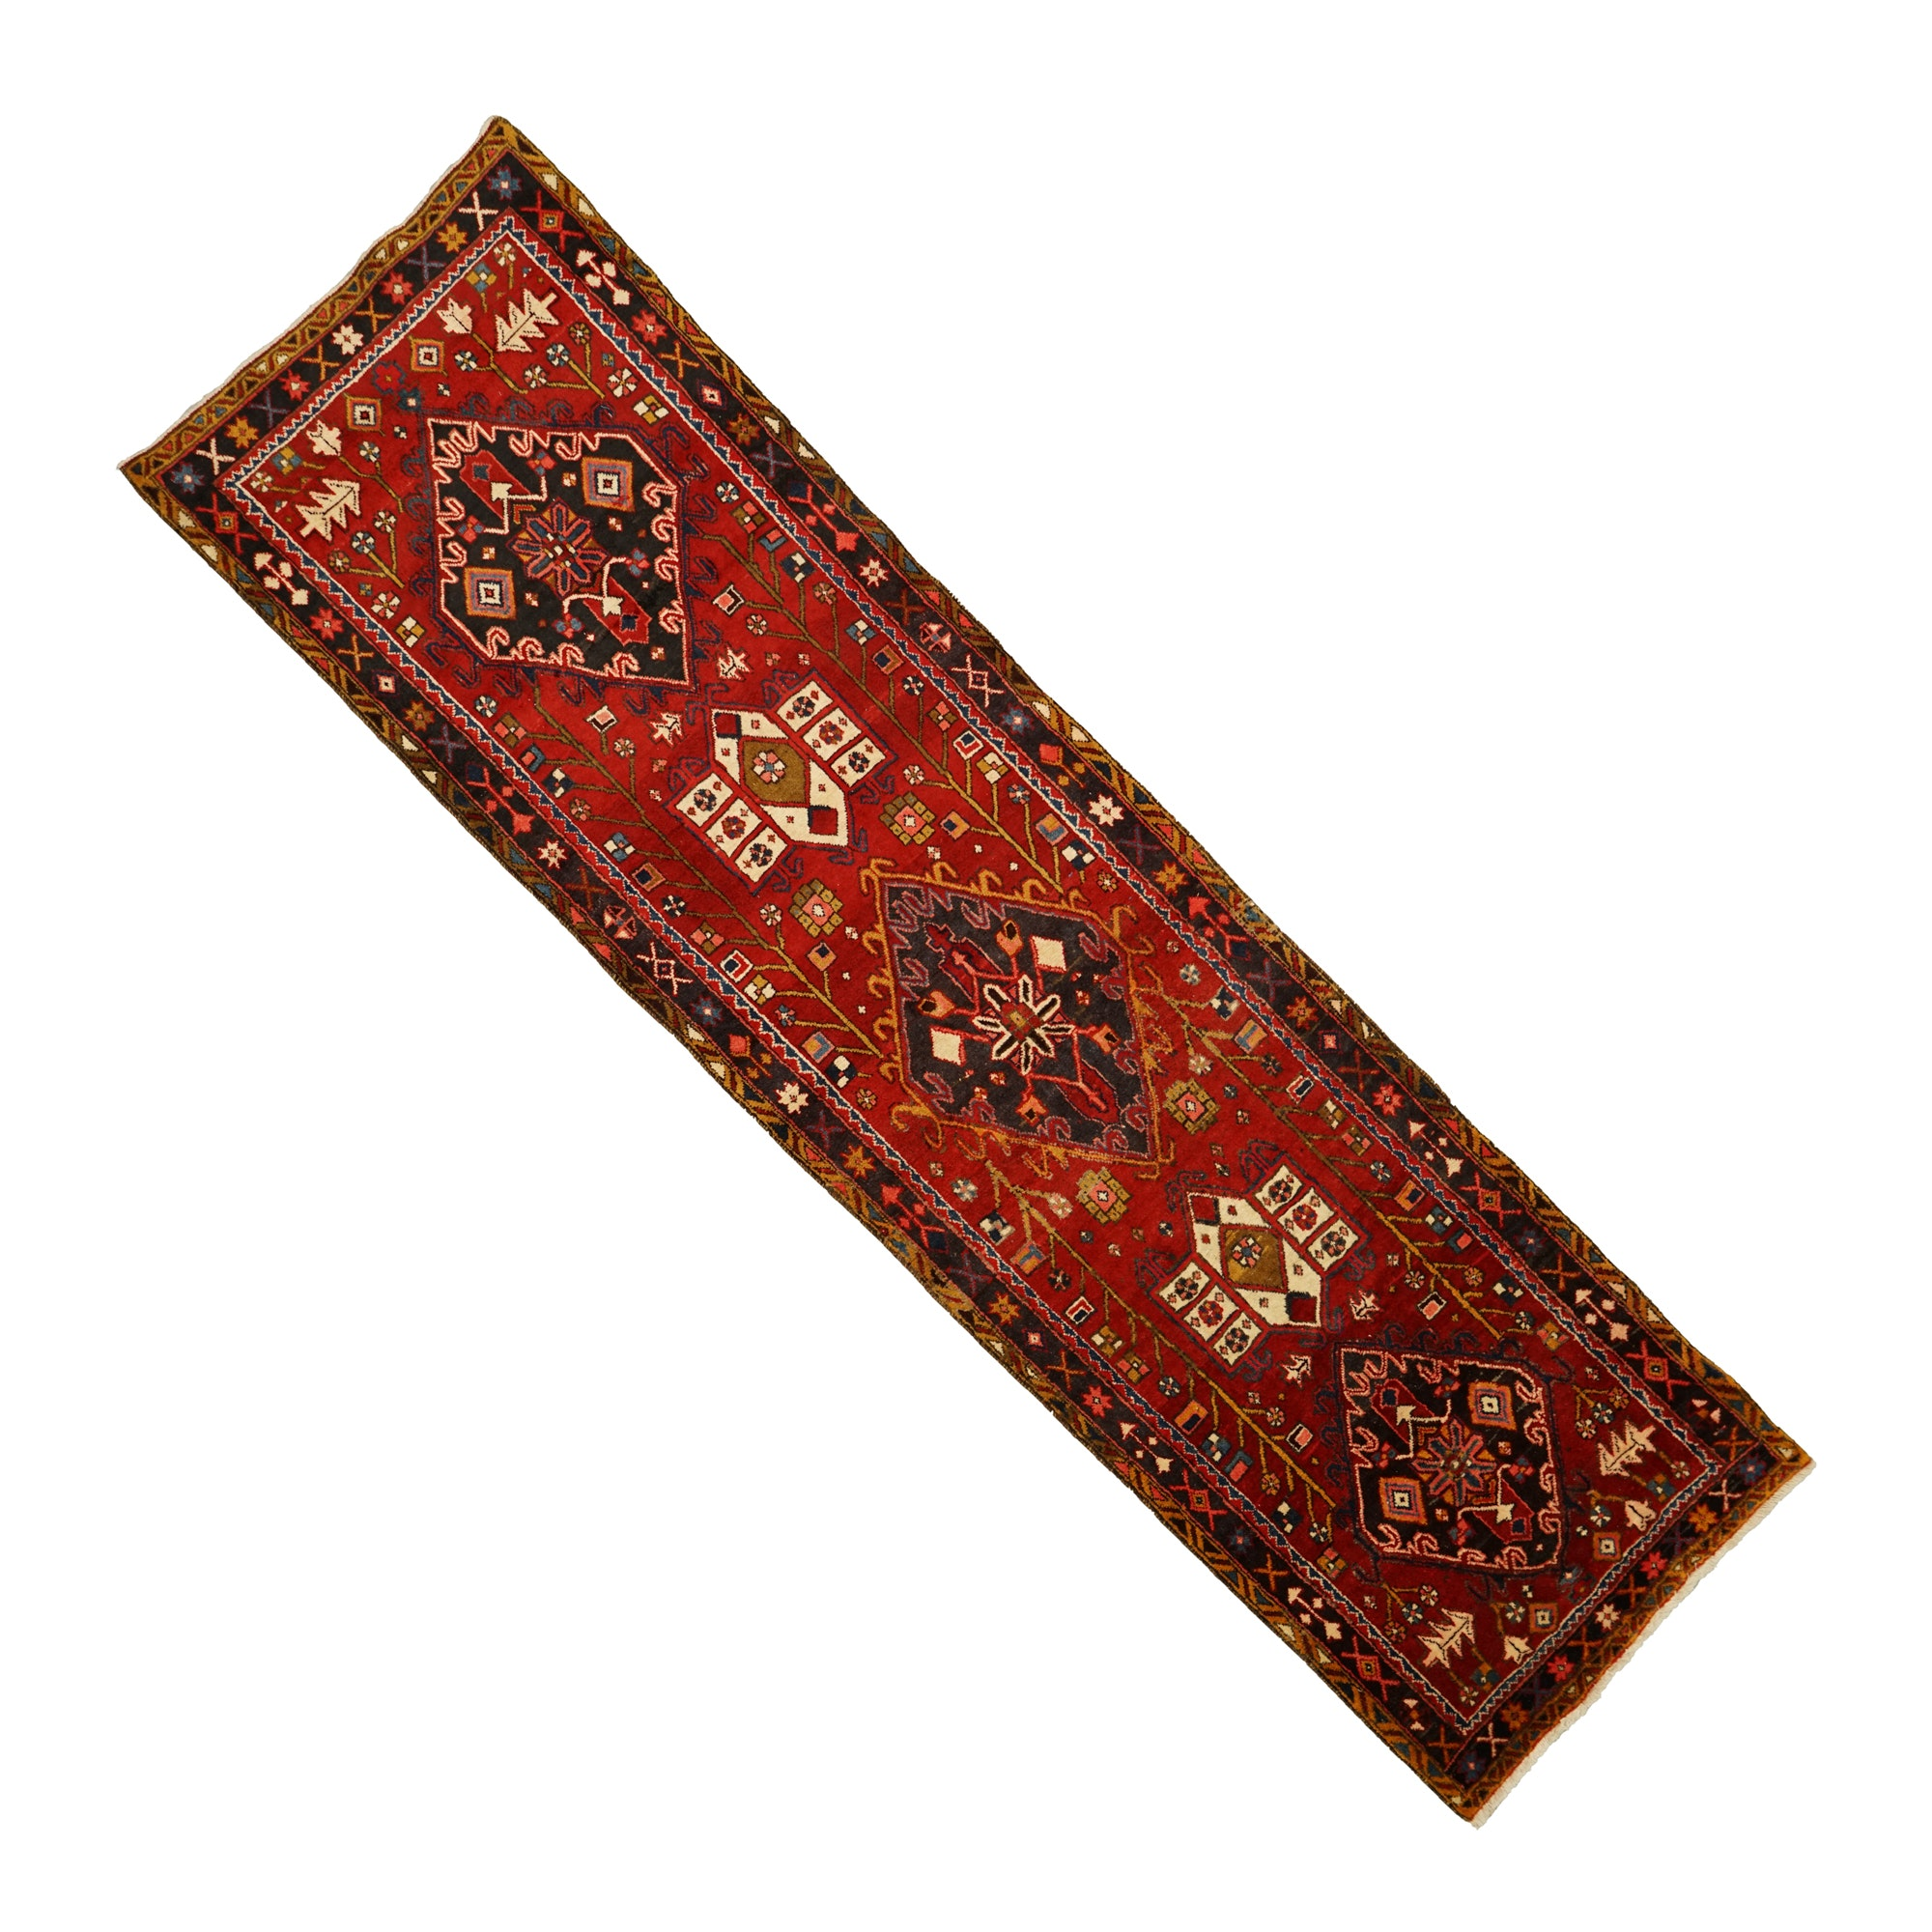 Hand-Knotted Persian Carpet Runner